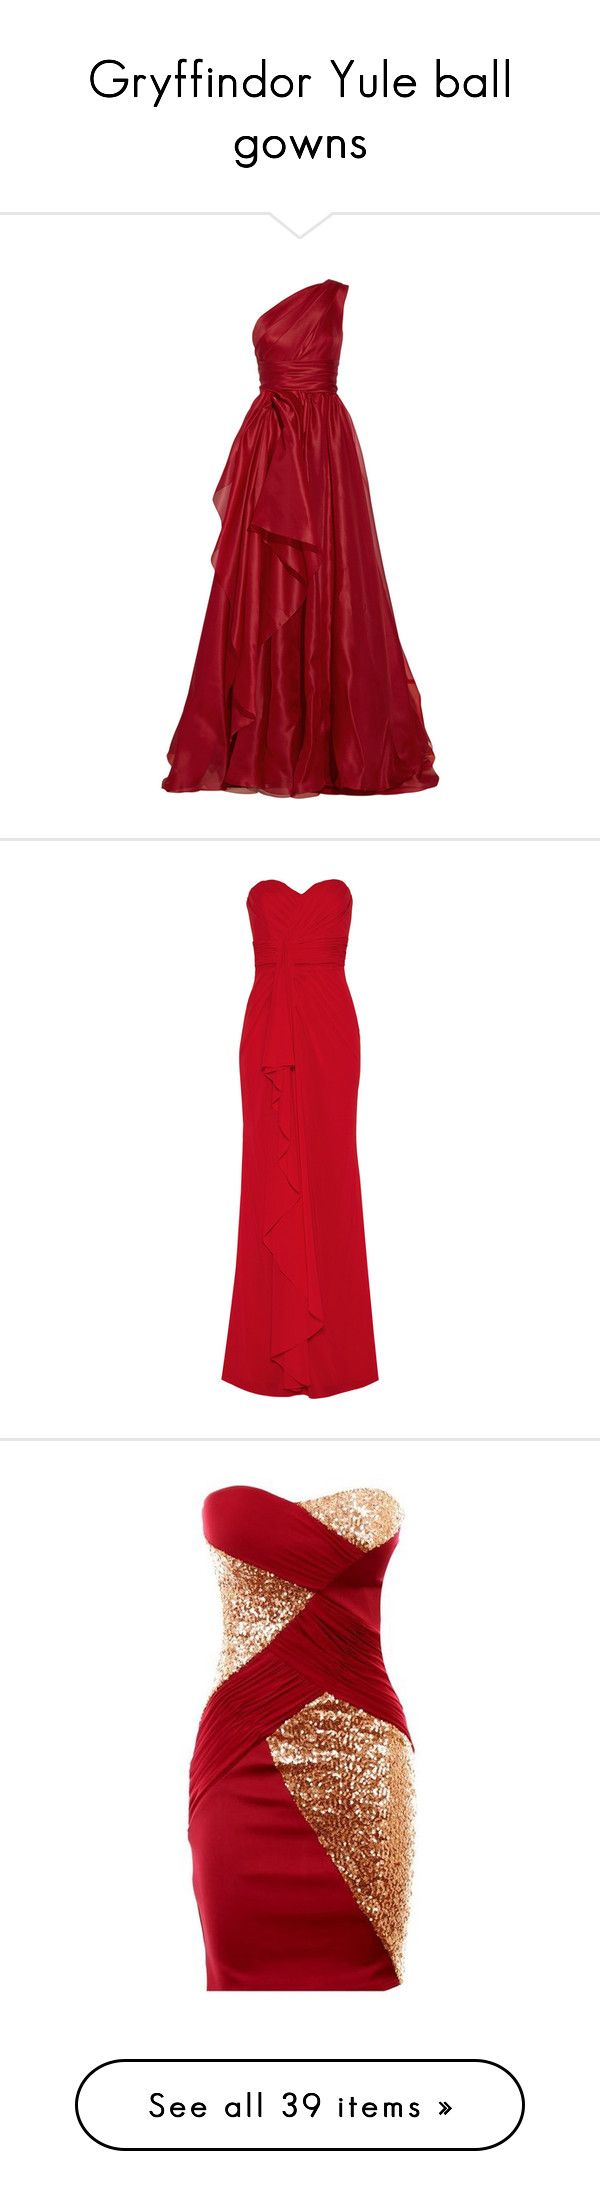 """""""Gryffindor Yule ball gowns"""" by weeby ❤ liked on Polyvore"""